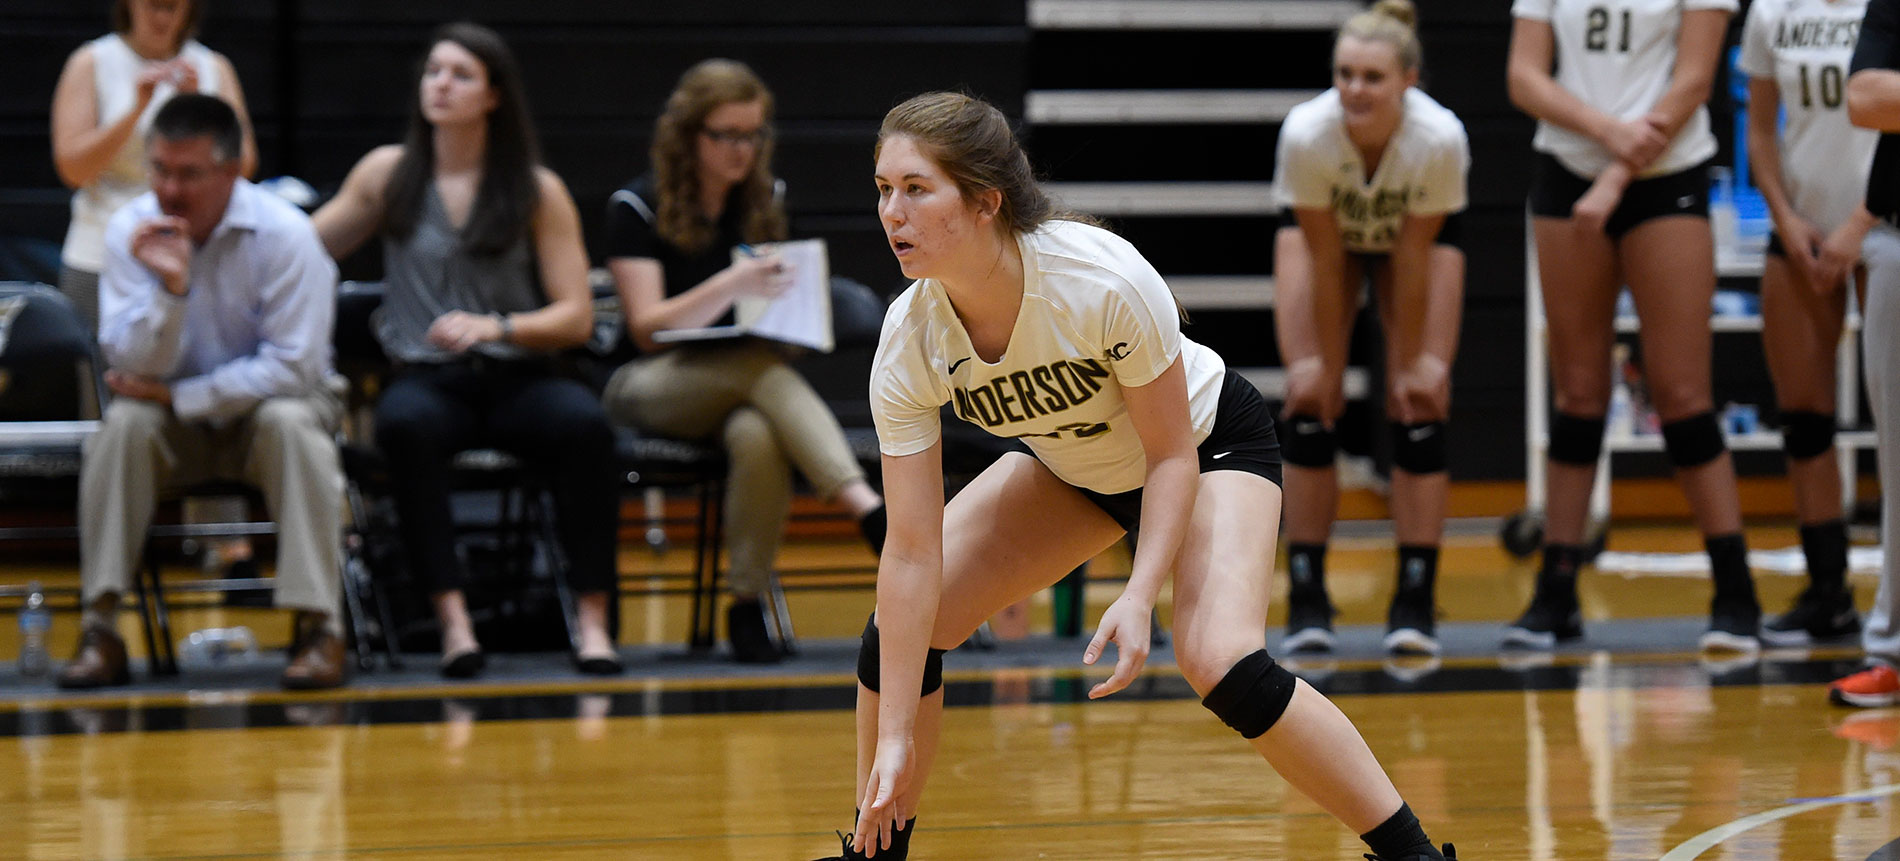 Volleyball Readies for Longest Homestand of the Season